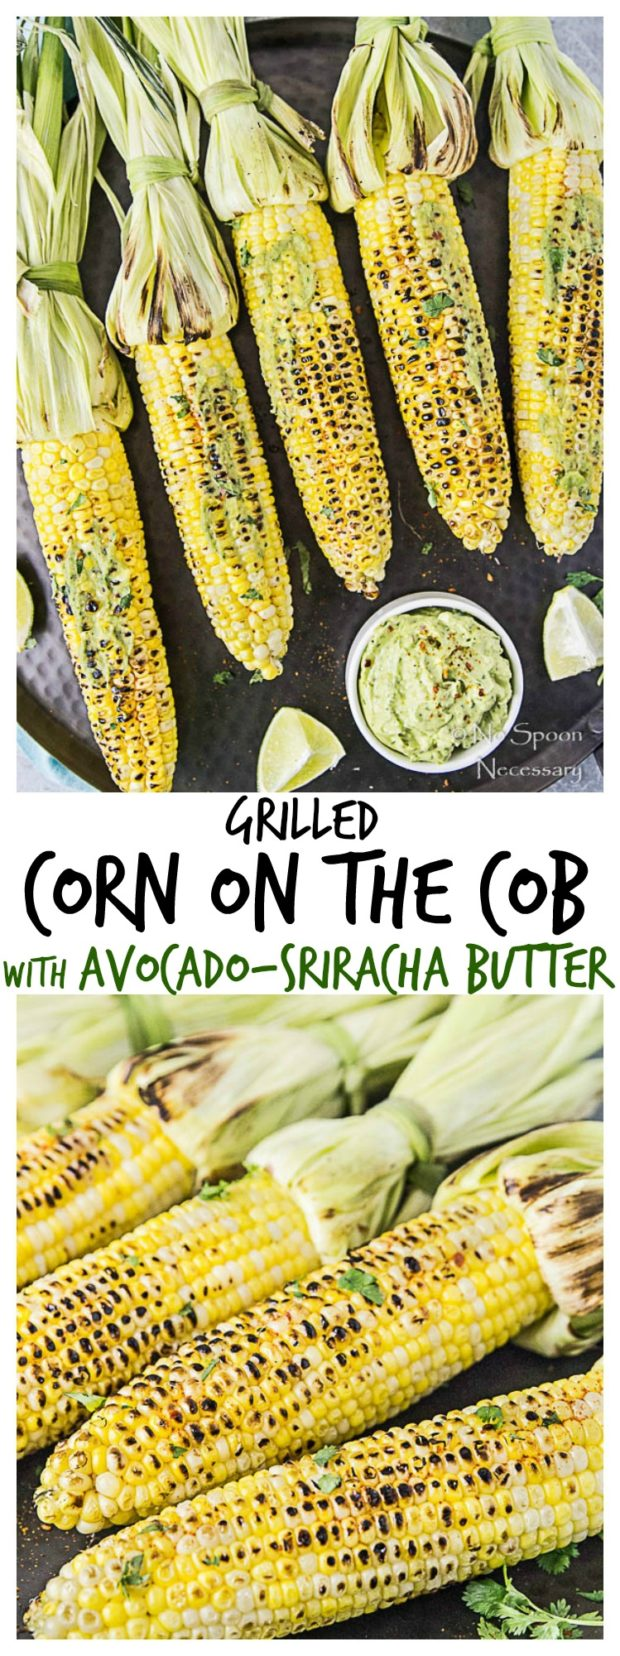 Grilled Corn on the Cobb with Avocado-Sriracha Butter-long pin1